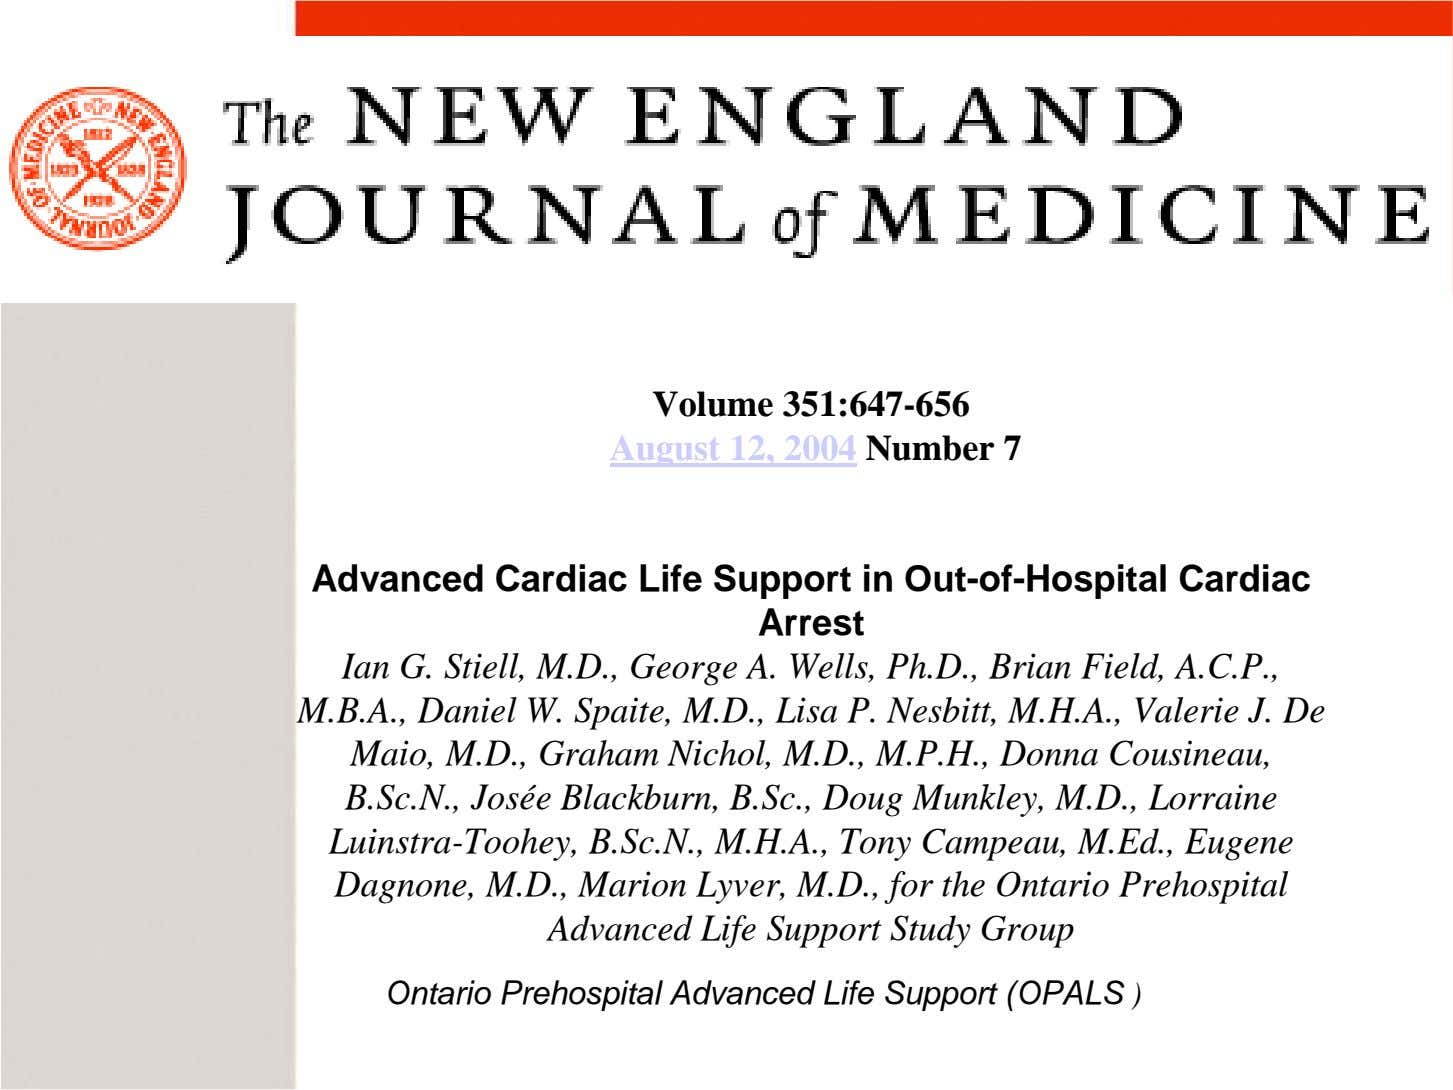 Volume 351:647-656 August 12, 2004 Number 7 Advanced Cardiac Life Support in Out-of-Hospital Cardiac Arrest